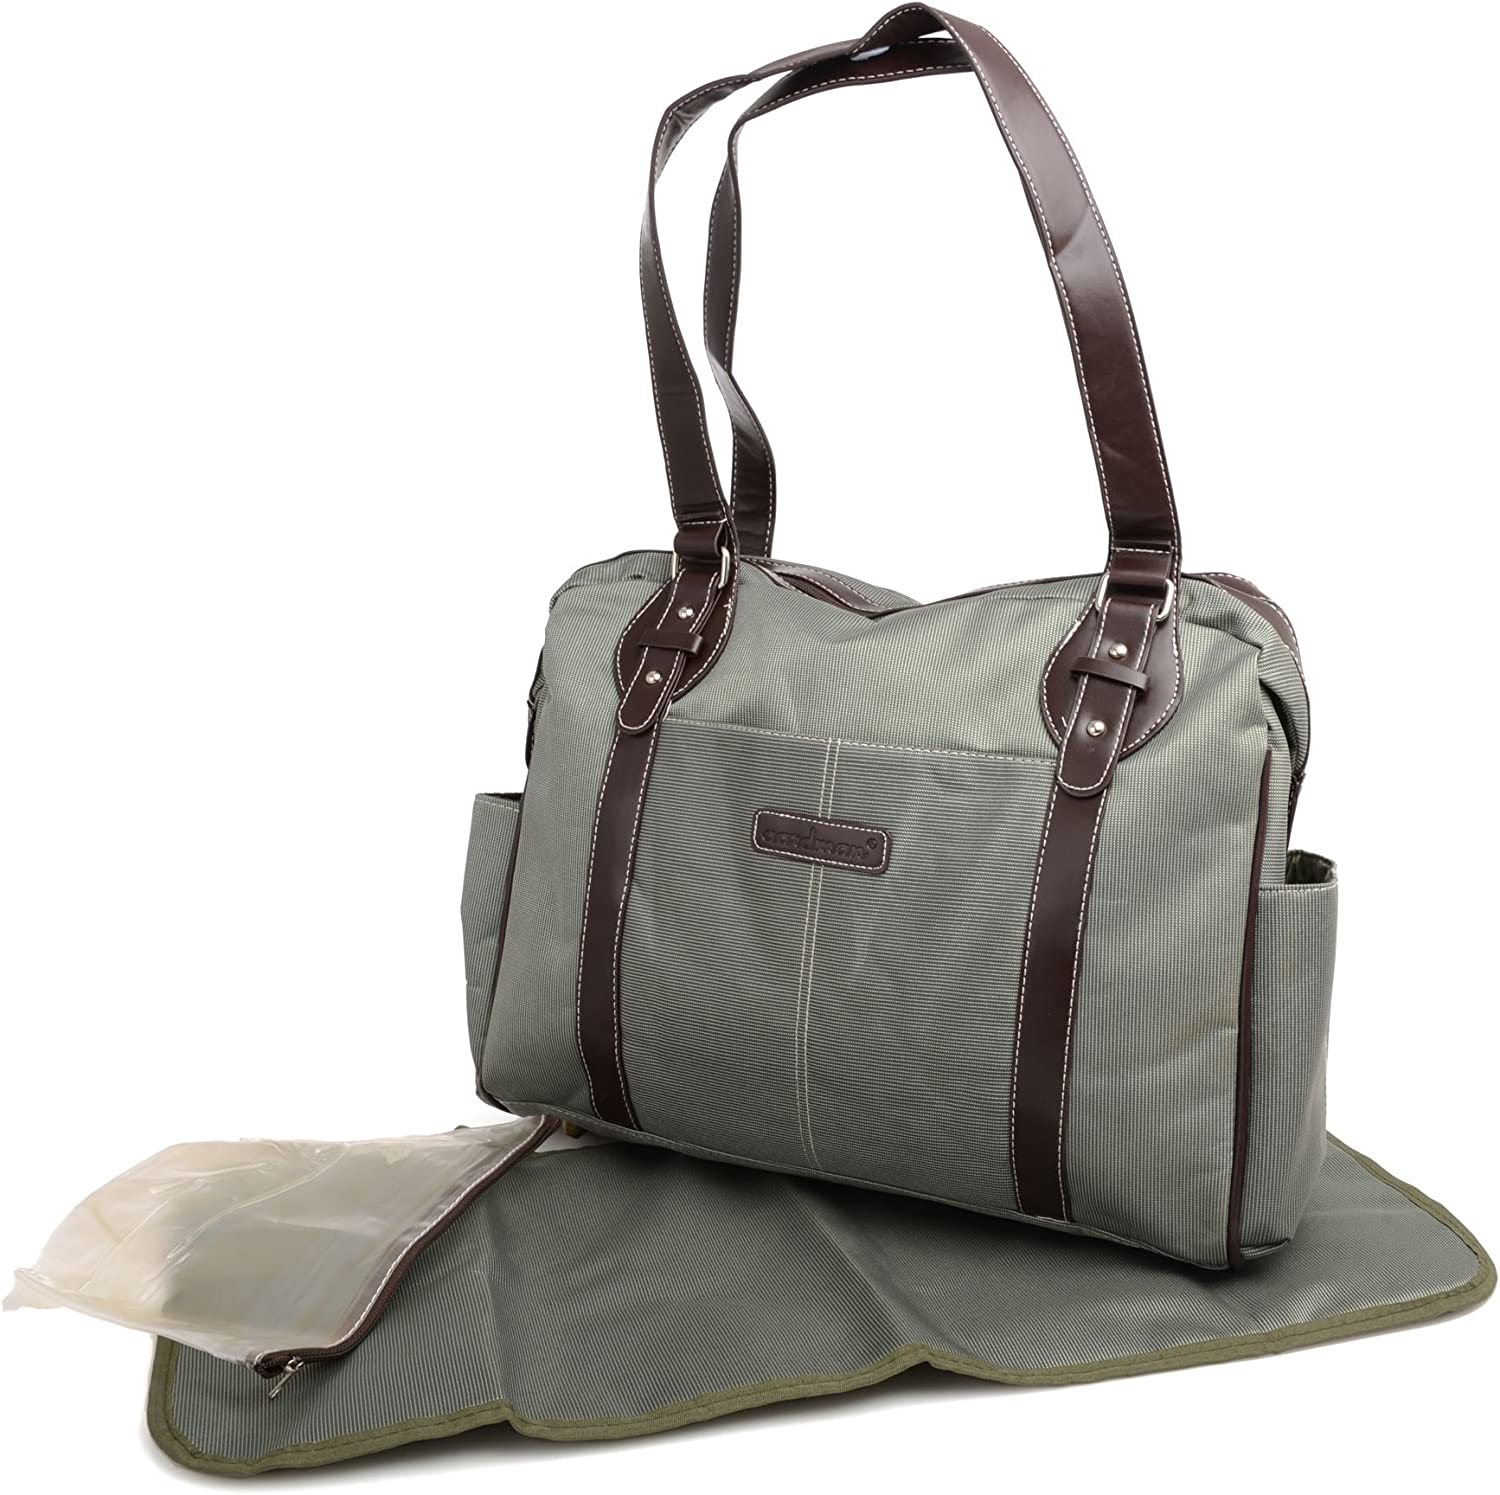 High quality fabric Oxford Green 3pcs Chic Nappy Diaper Changing Bag set with Leather straps